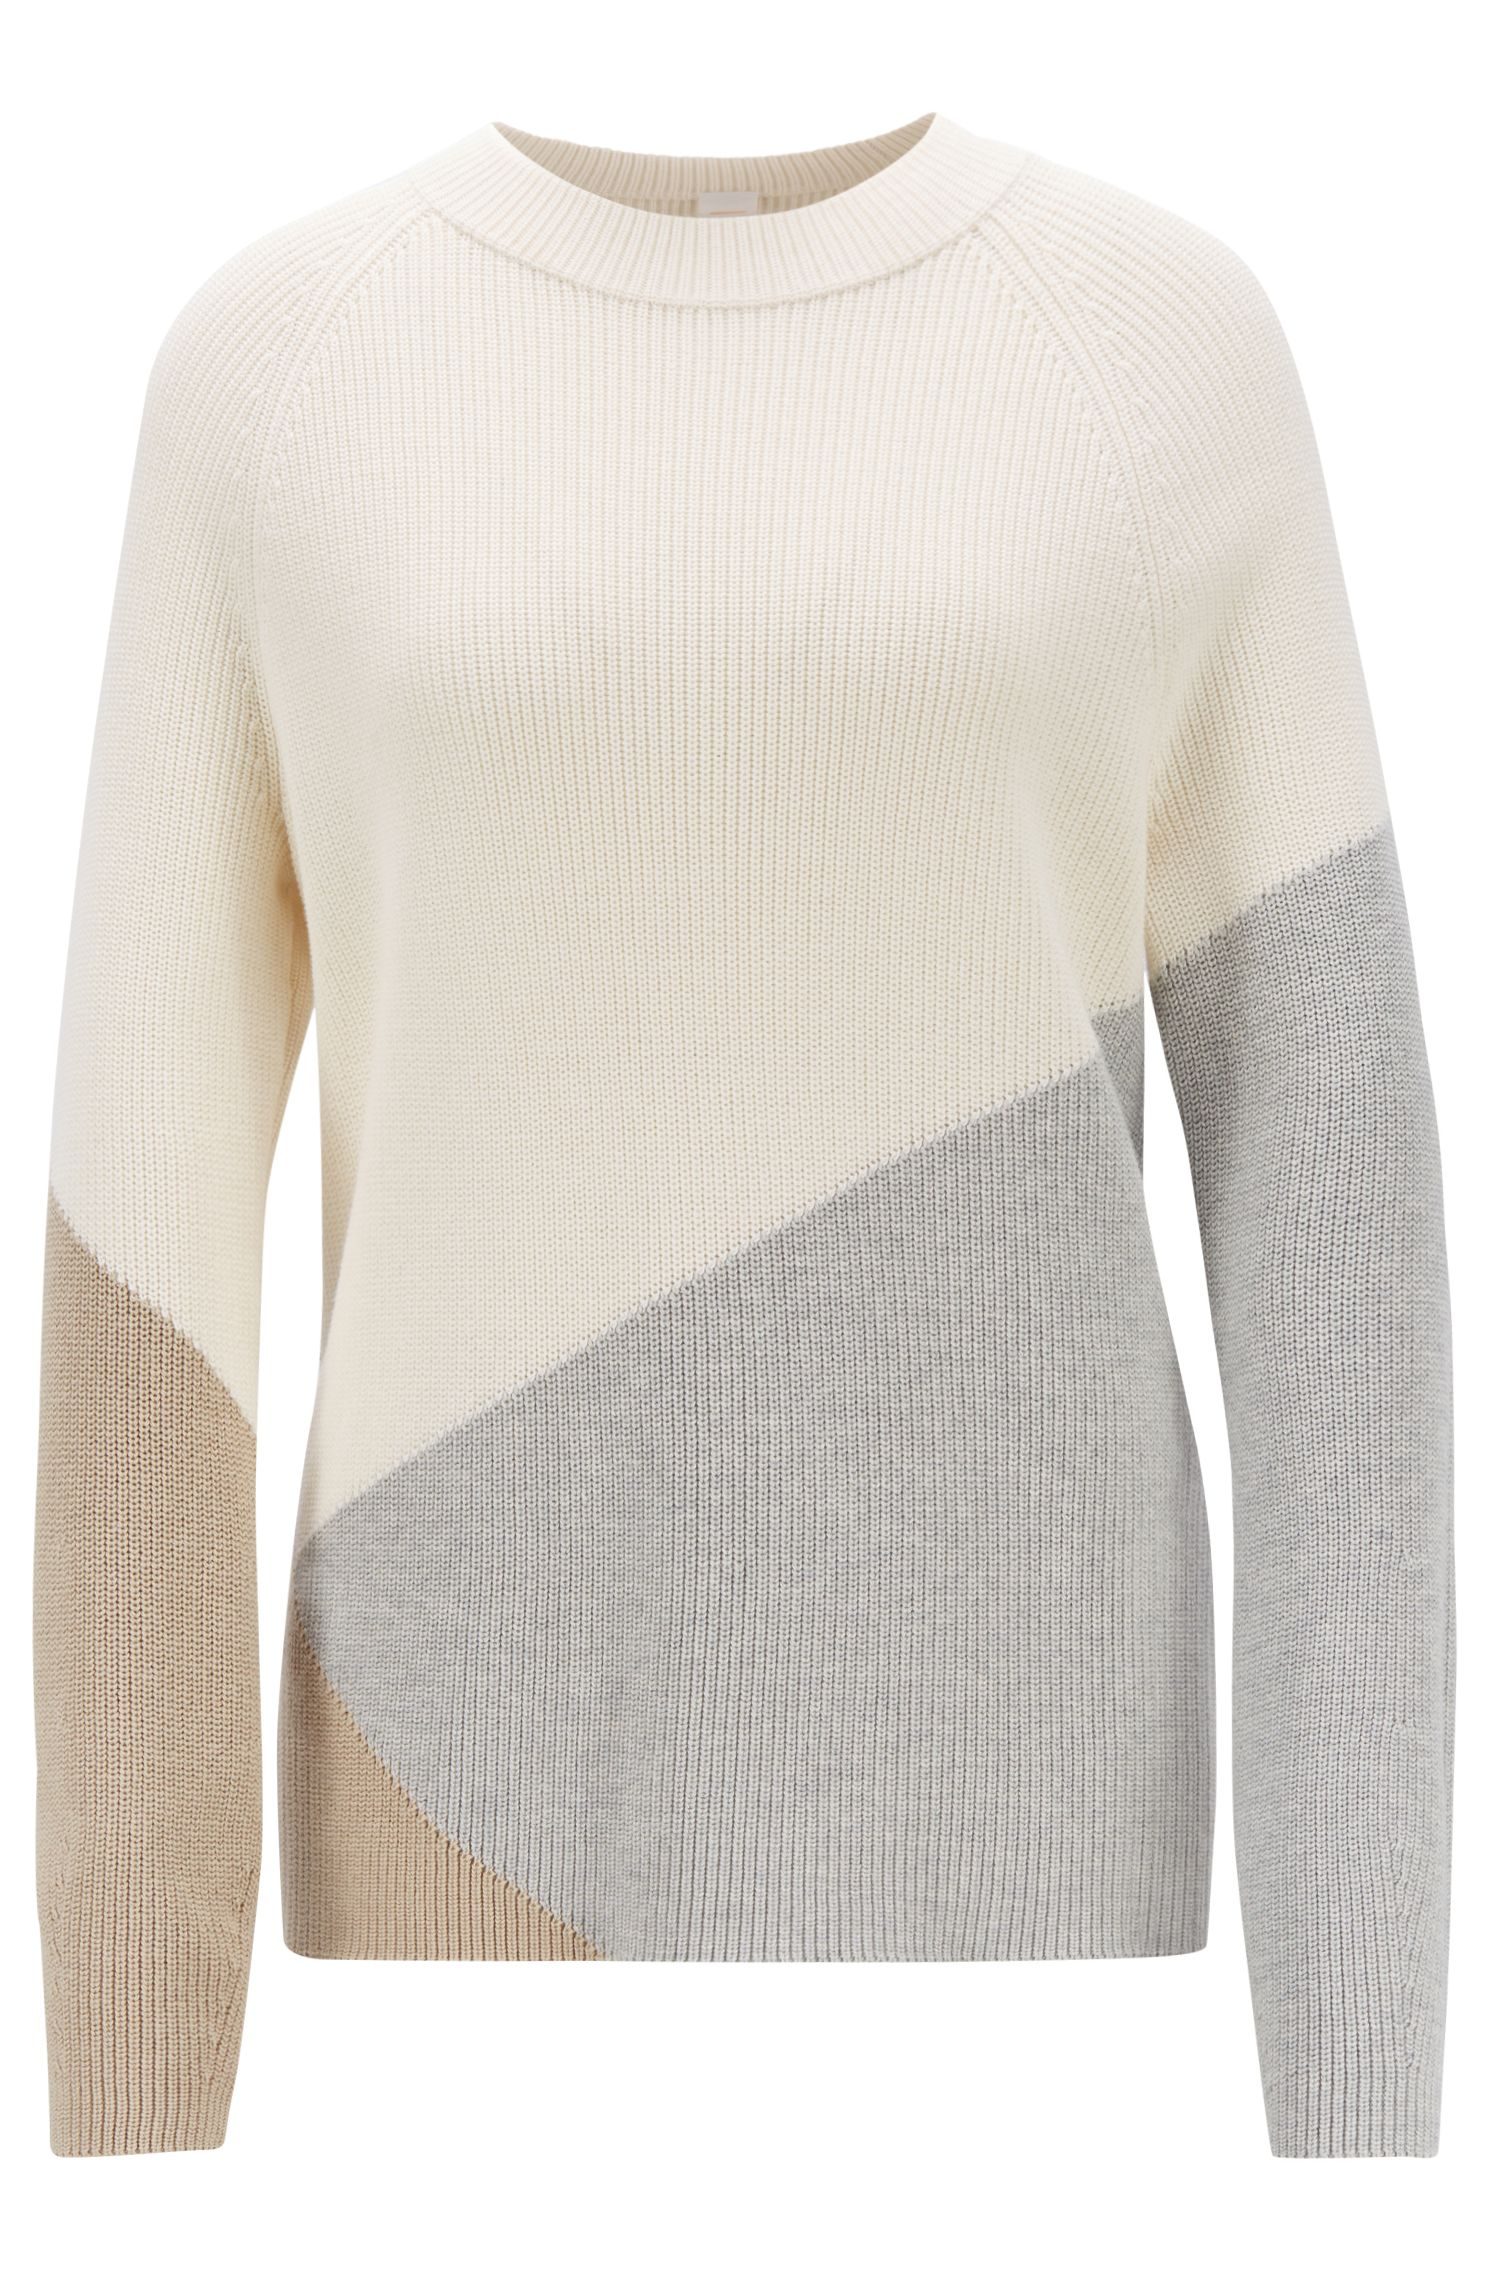 Pull color block Relaxed Fit en coton et soie, Fantaisie